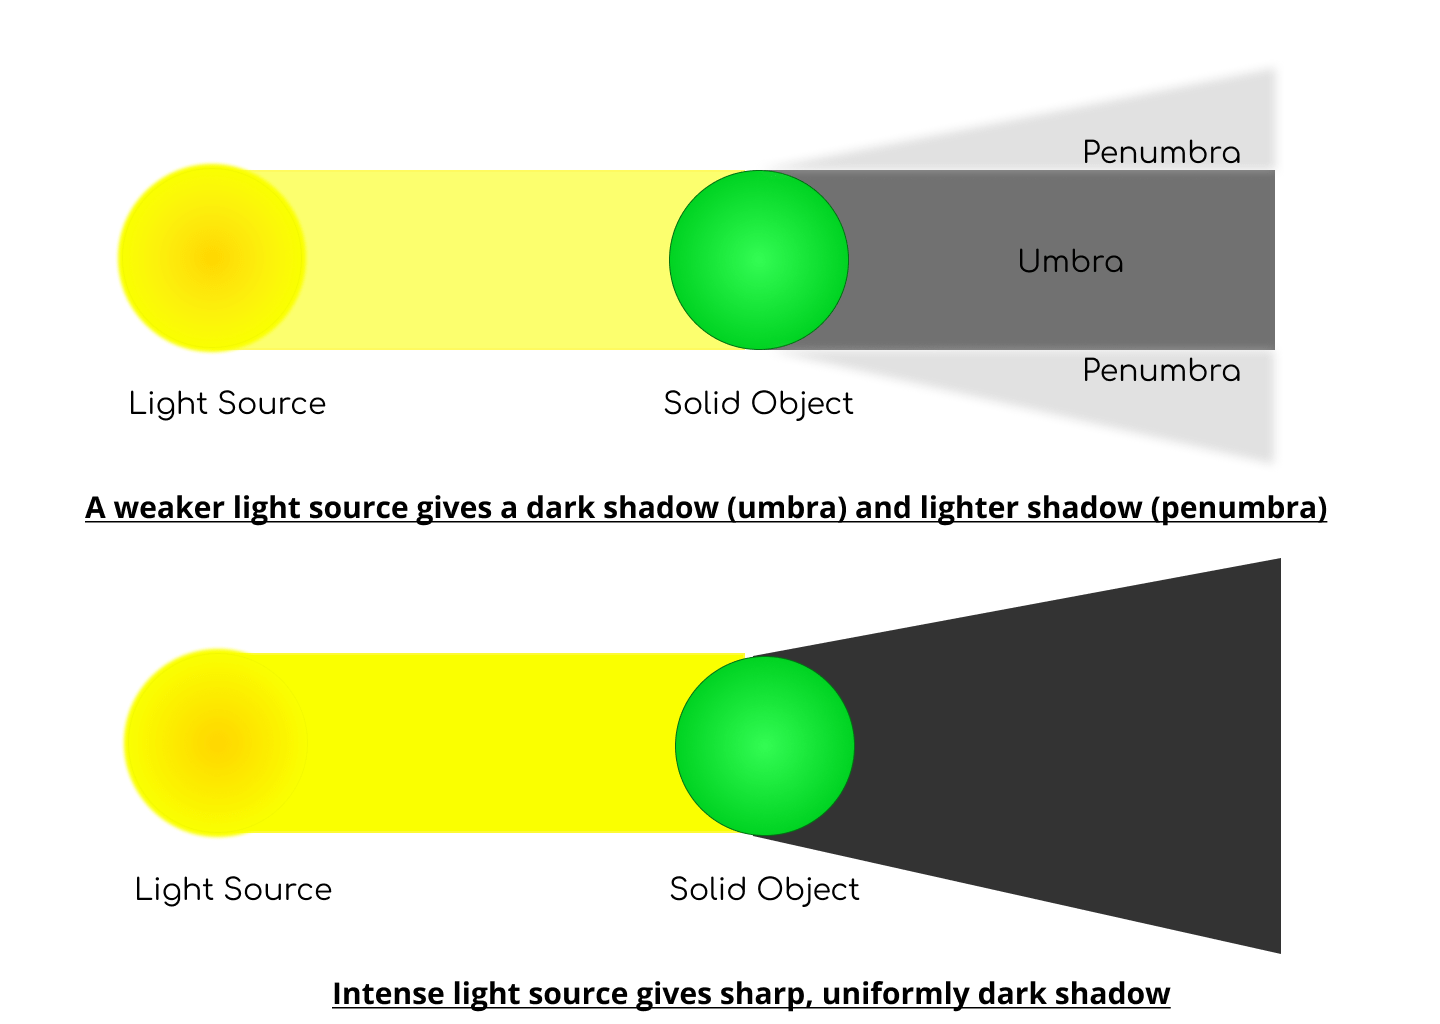 Two vertically stacked illustrations.The top is a green circle with a yellow light source coming at it from the left and both umbra and penumbra shadows are cast to the right. The bottom illustration is the same green circle and light source, but with a solid black shadow cast to the right.